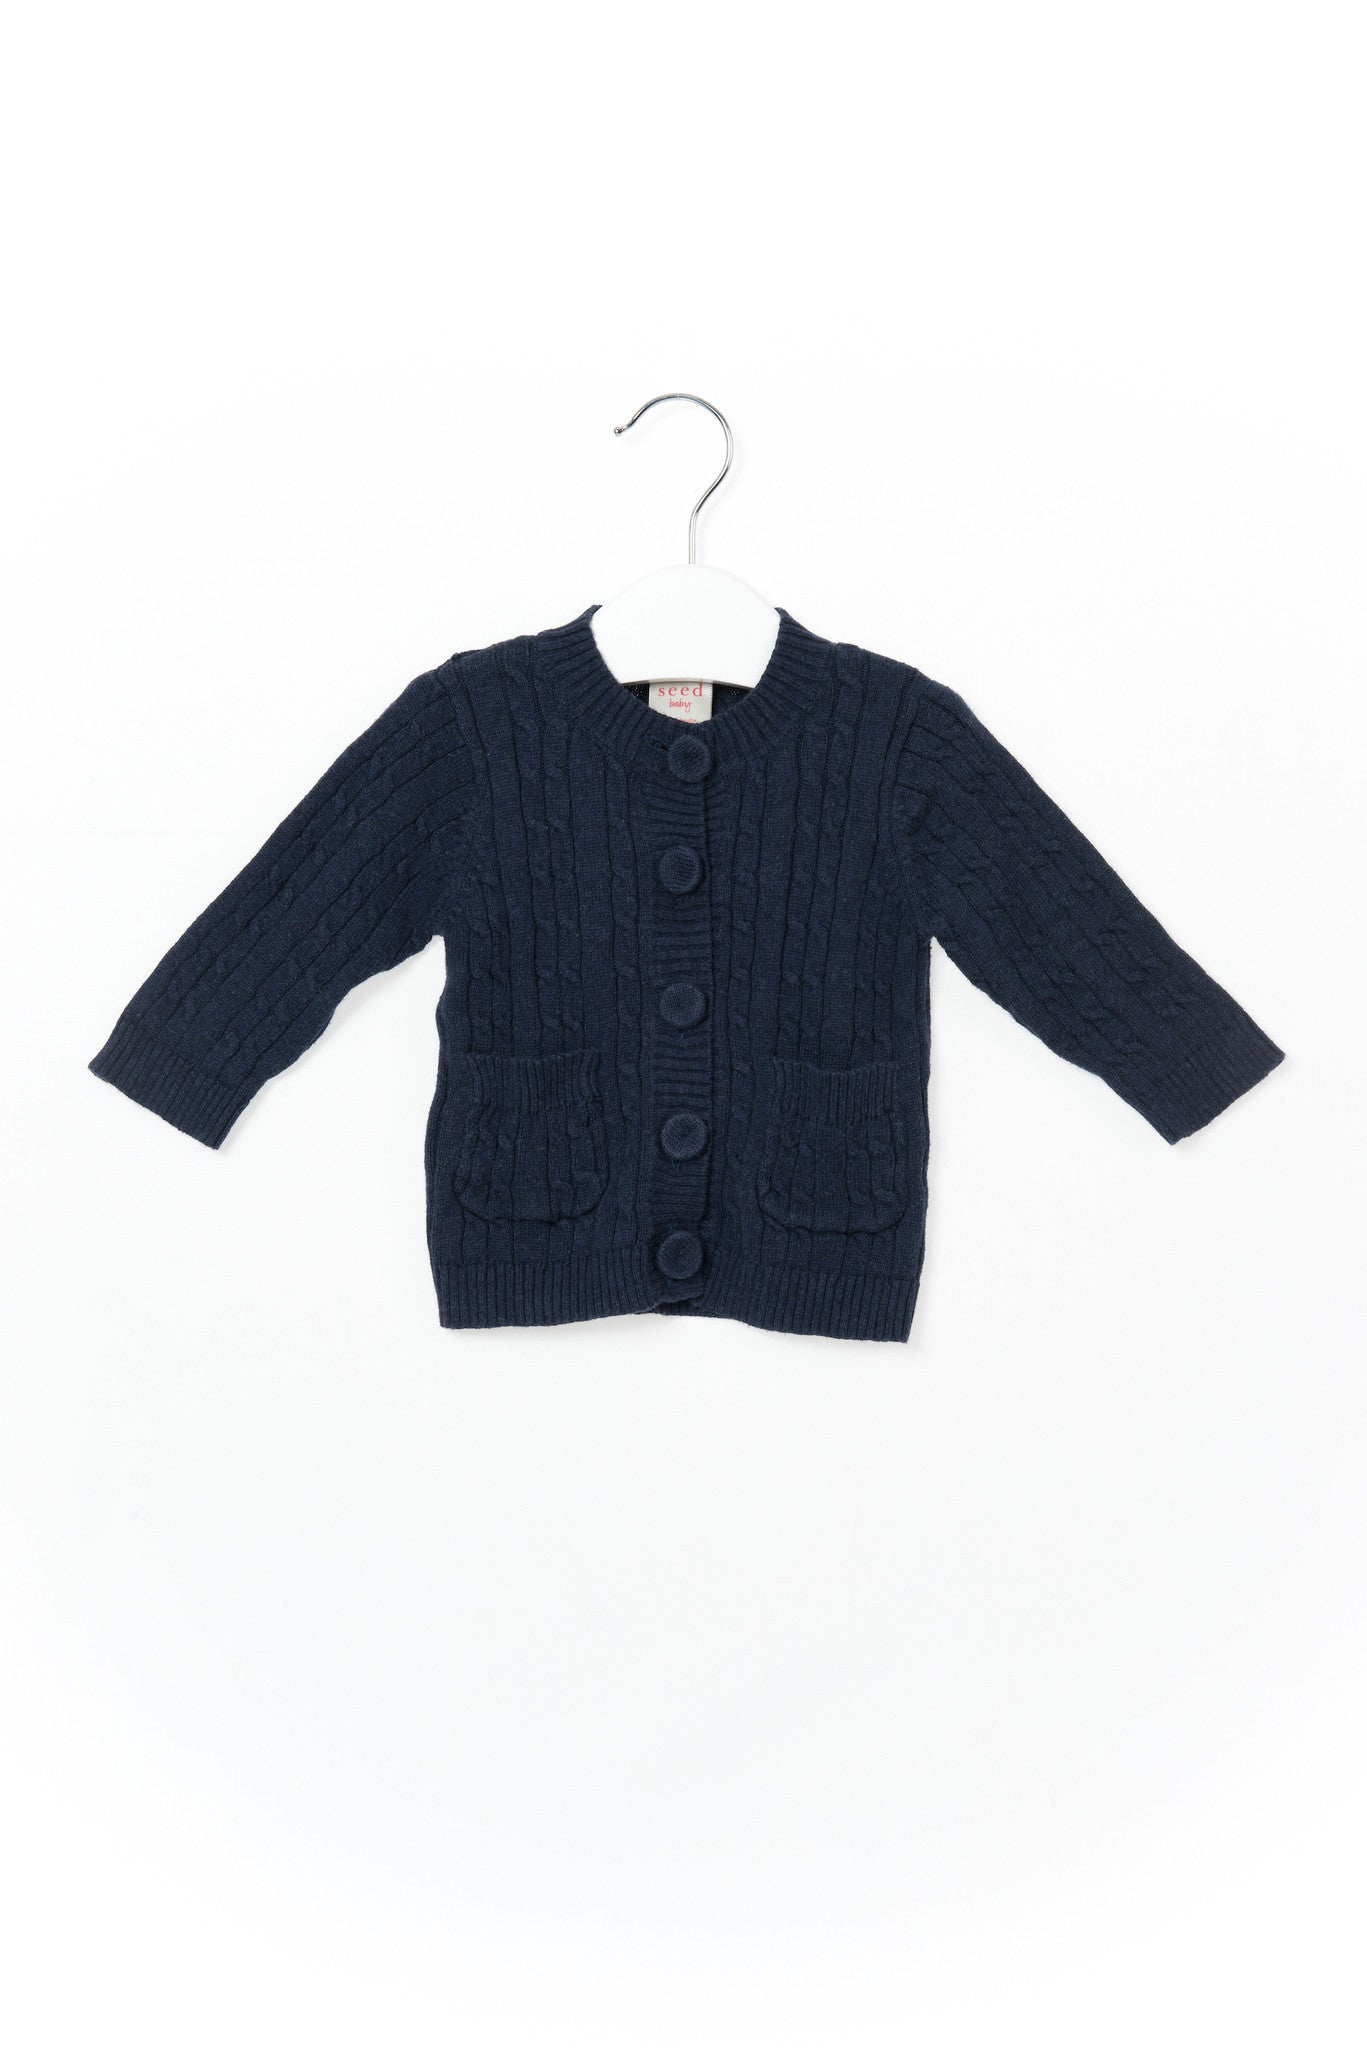 10001262 Seed Baby~Cardigan 0-3M at Retykle